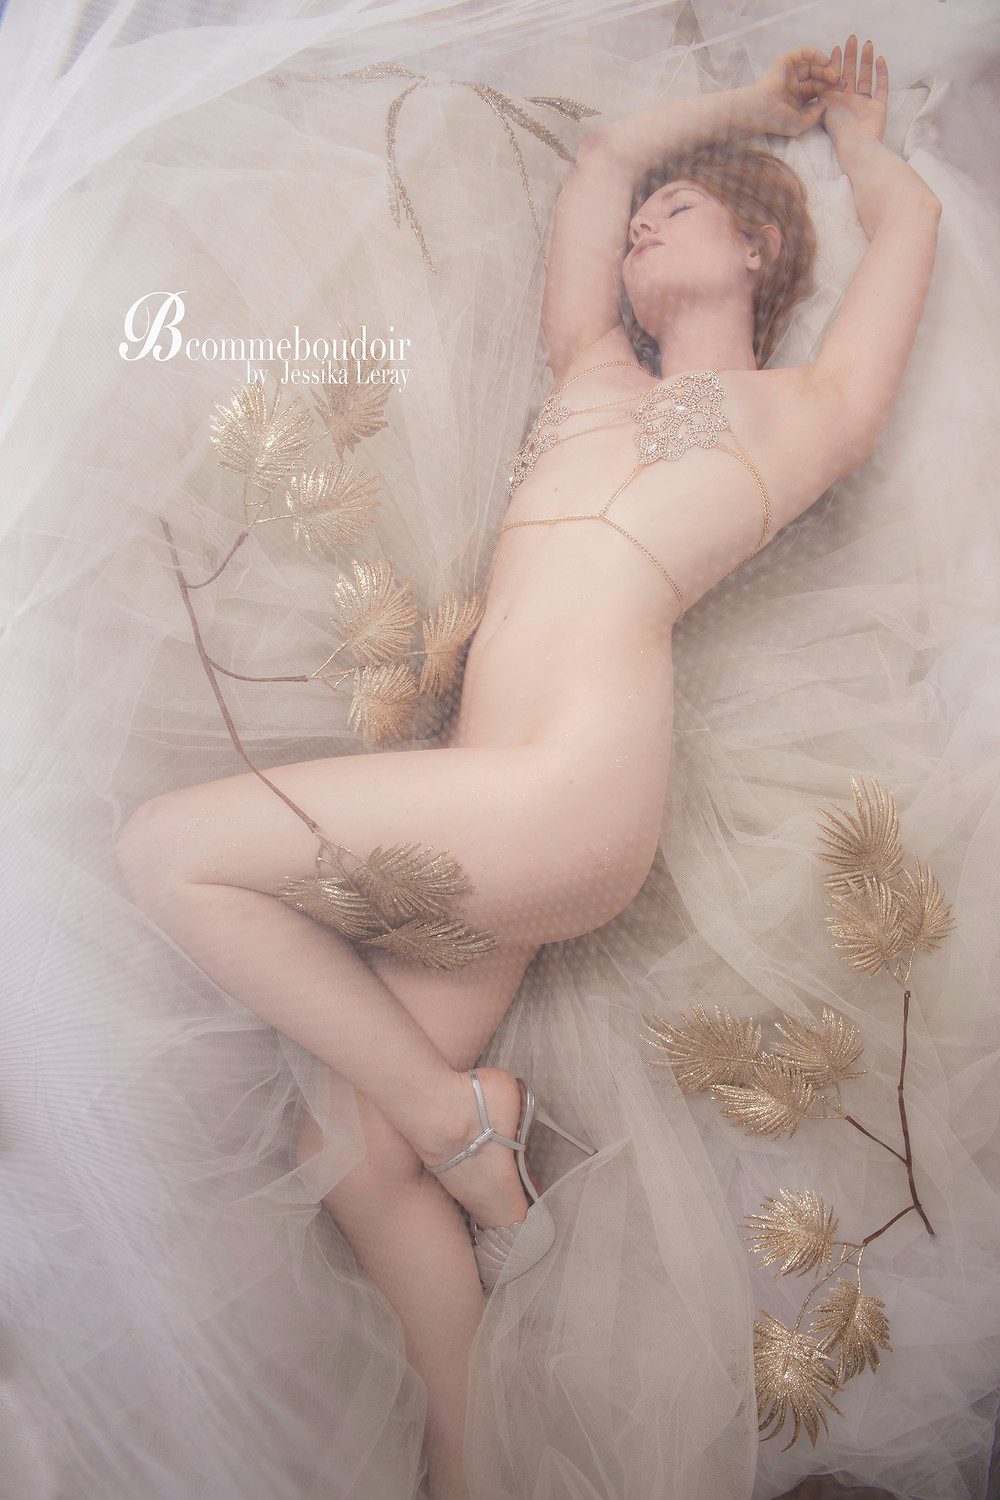 shooting photo Fine Art et  boudoir ou  portrait intime tel un tableau